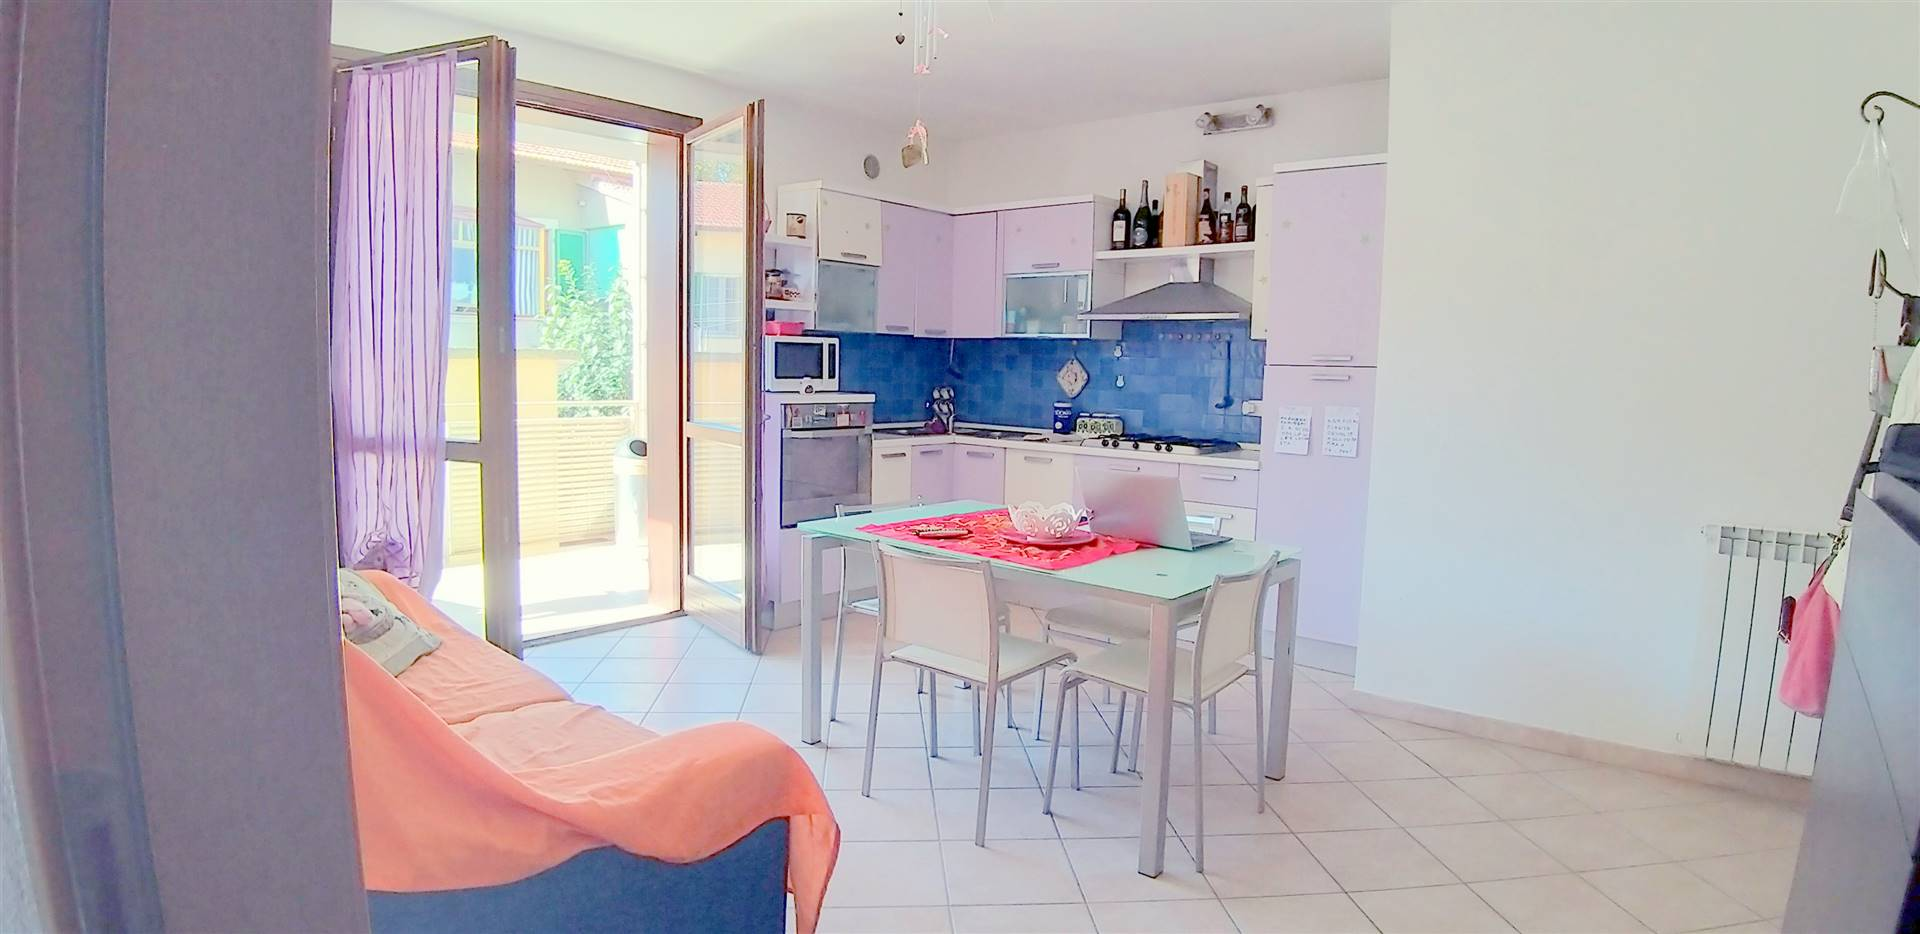 VIA DEI MILLE, GROSSETO, Apartment for sale, Excellent Condition, Heating Individual heating system, Energetic class: E, Epi: 77,835 kwh/m2 year,